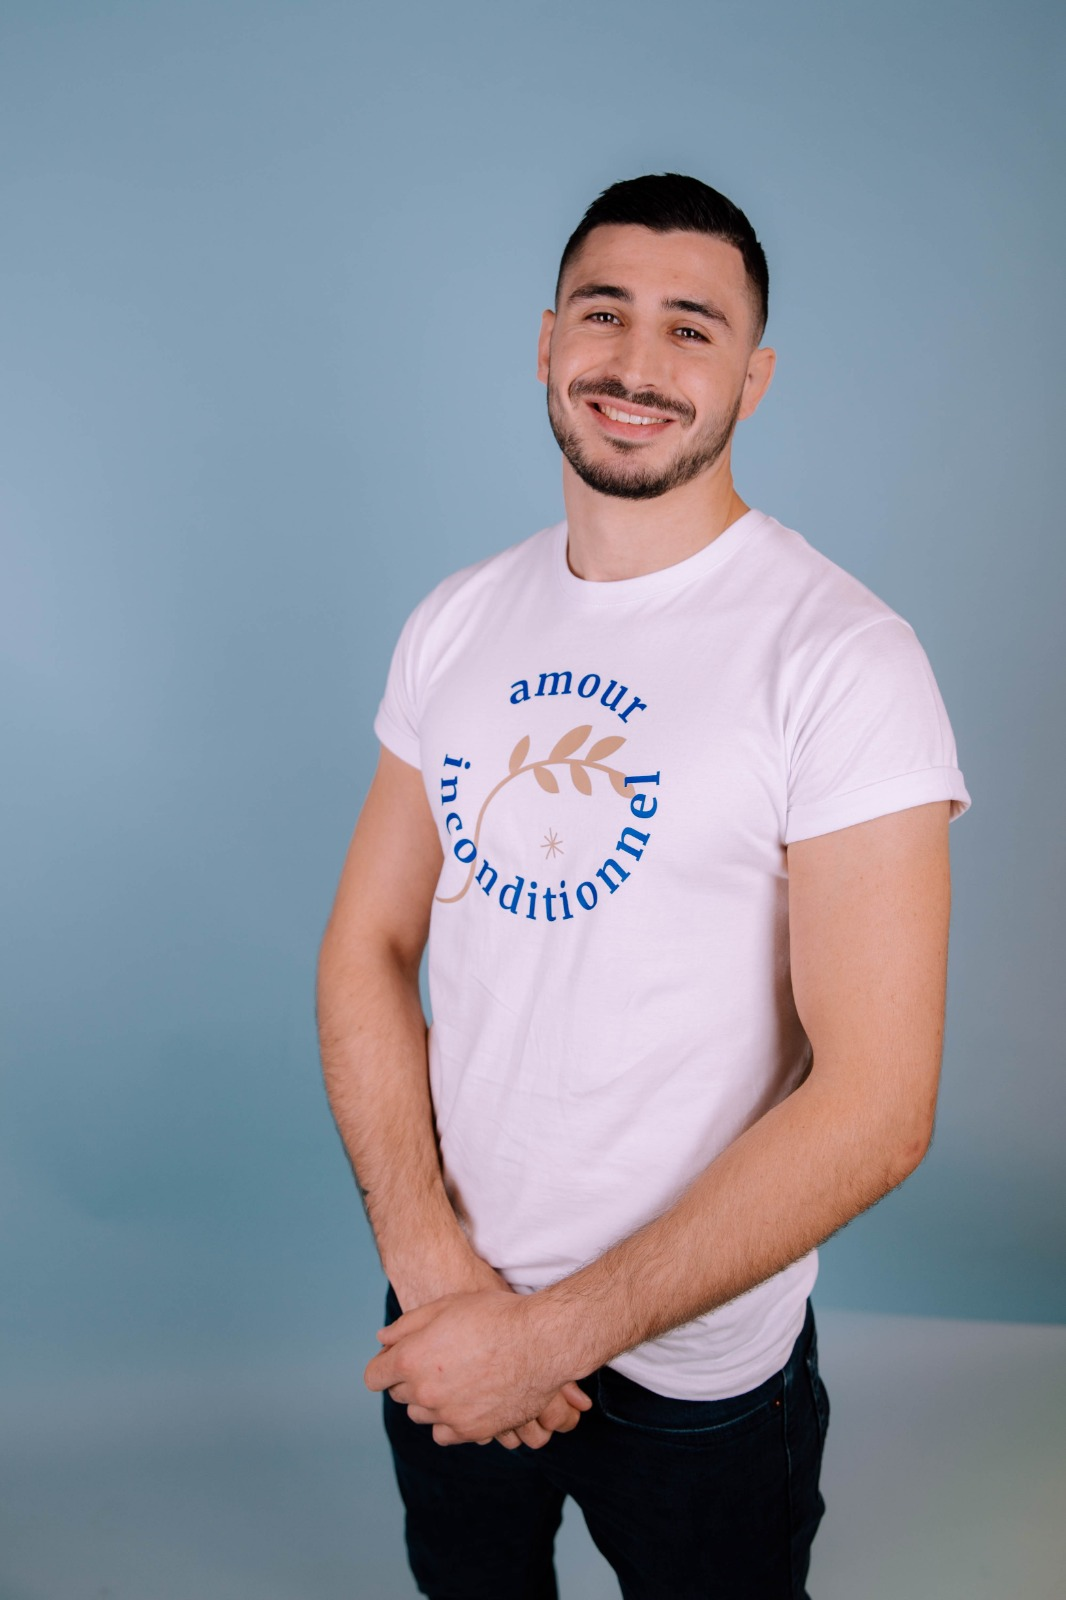 tee-shirt-wanderhumanity-amour-inconditionnel-face-homme